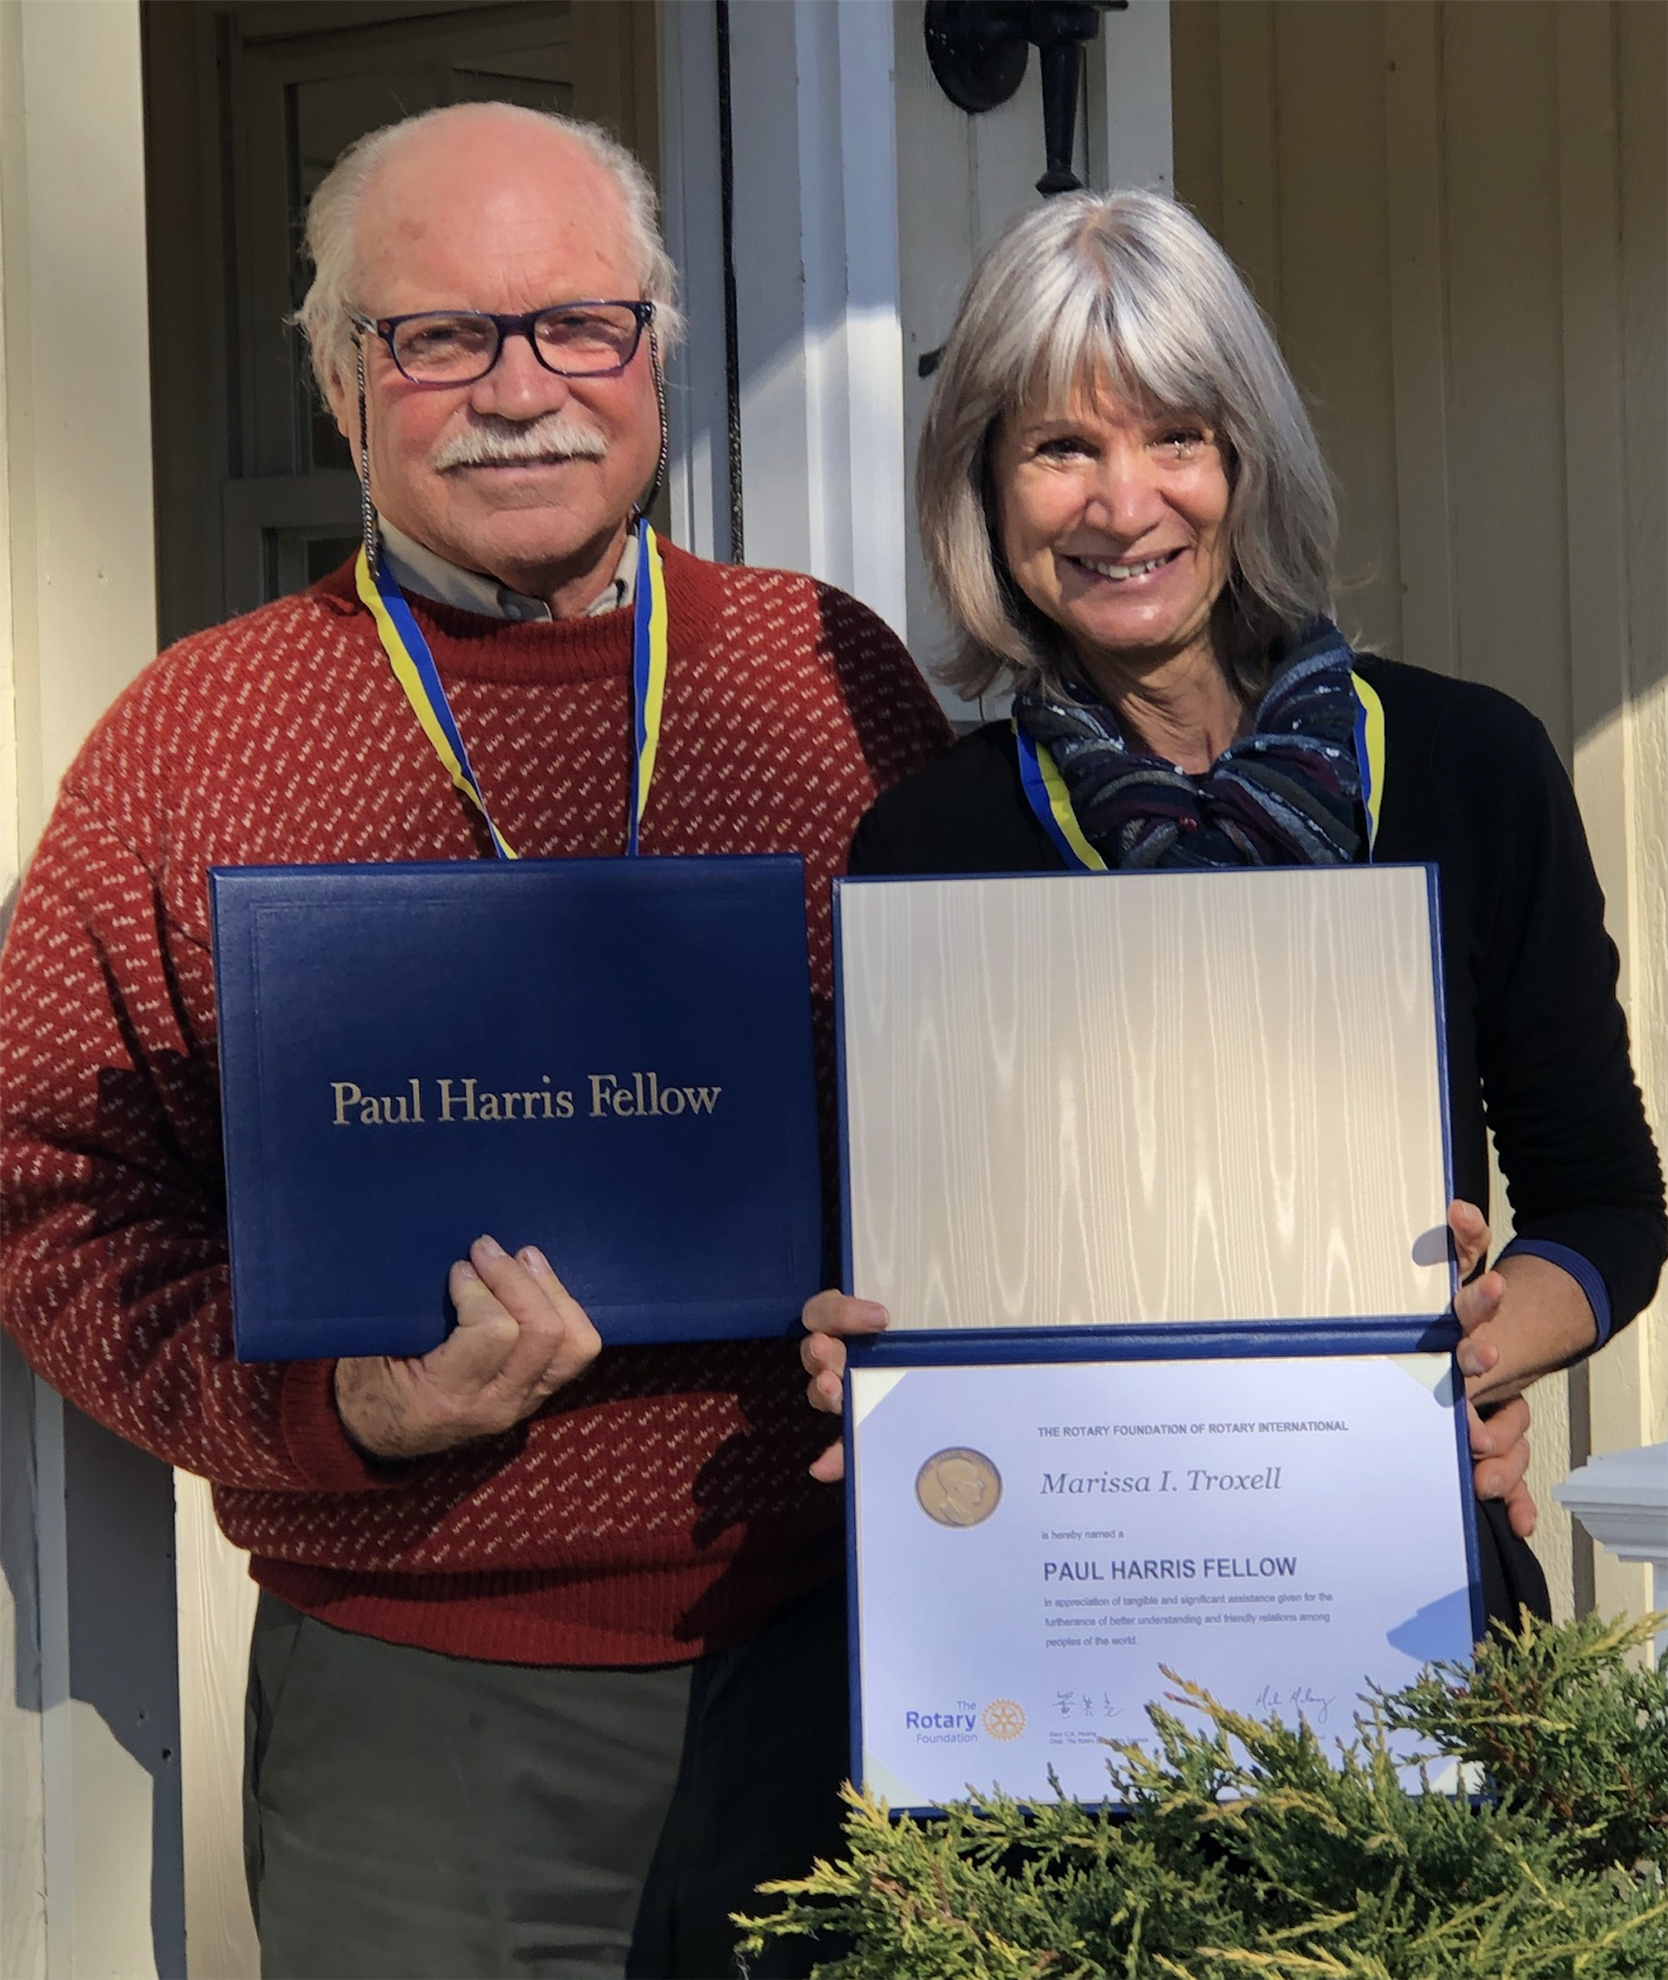 Rotarian David Troxell and his wife Marissa were presented with Paul Harris Awards by Rotarian Dan Overcash and his wife Brigetta at a recent ZOOM meeting of the Rotary Club of Jamestown.